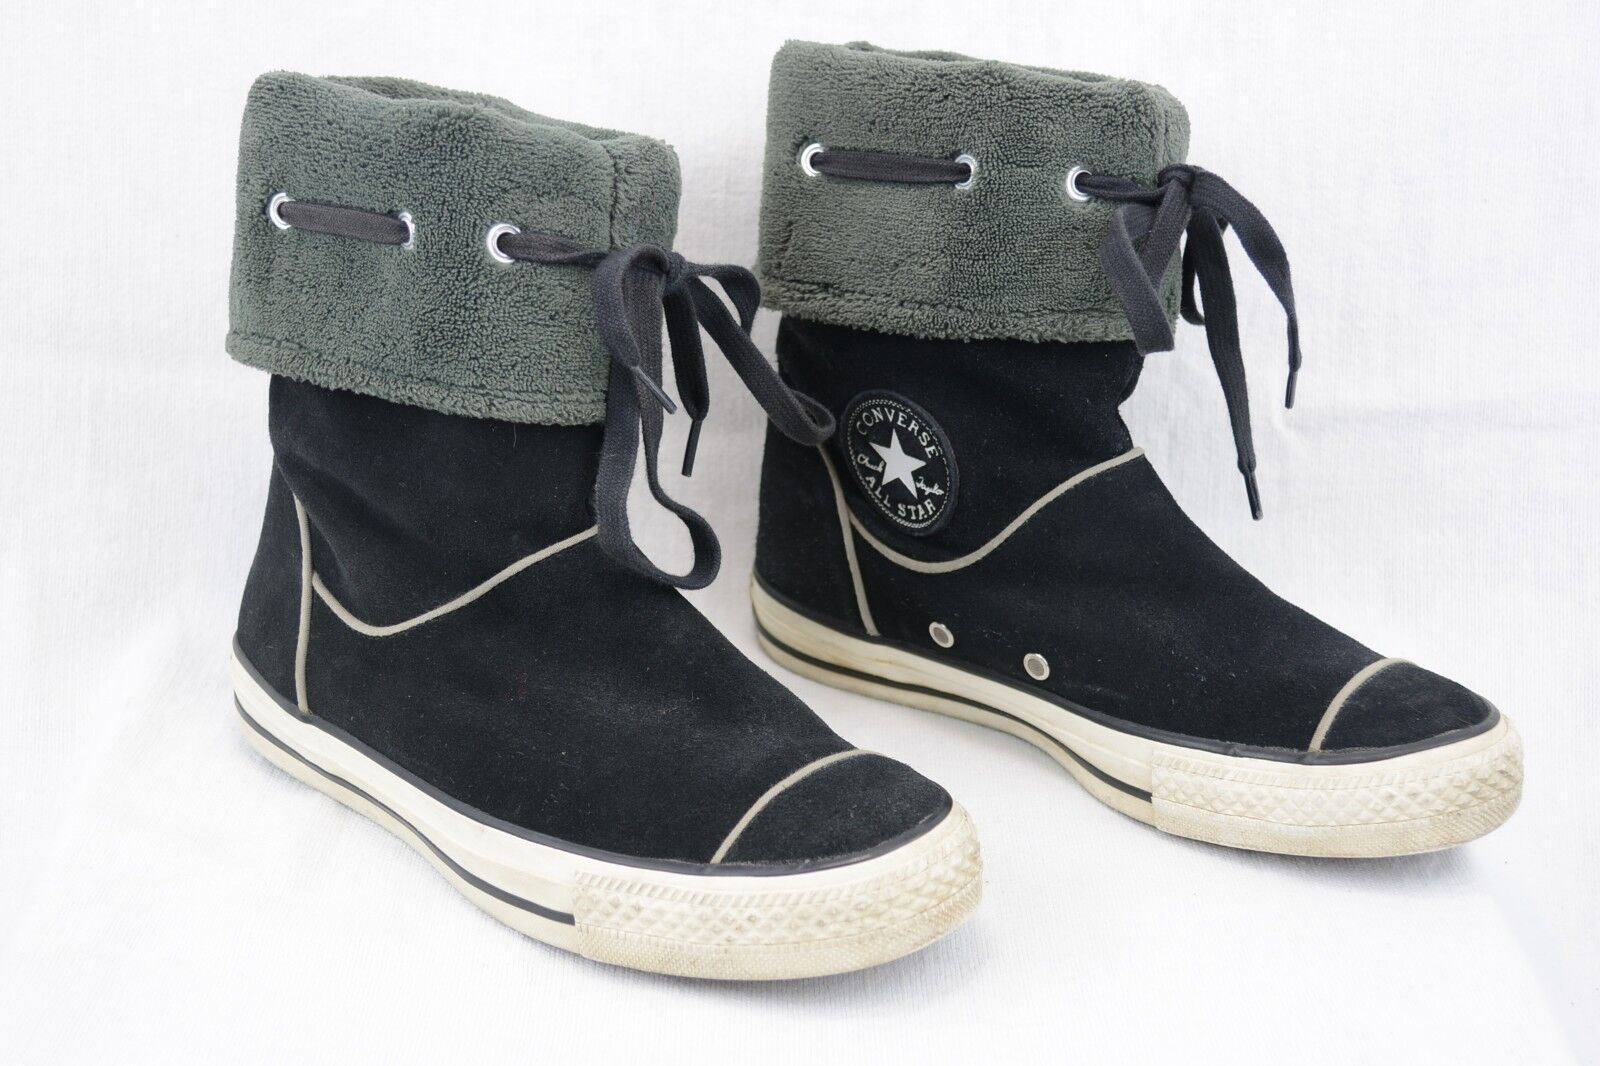 Converse CT All Star Womens 7 Fleece Lined Pull On A8 Suede Ankle Boots Black A8 On 56cae8